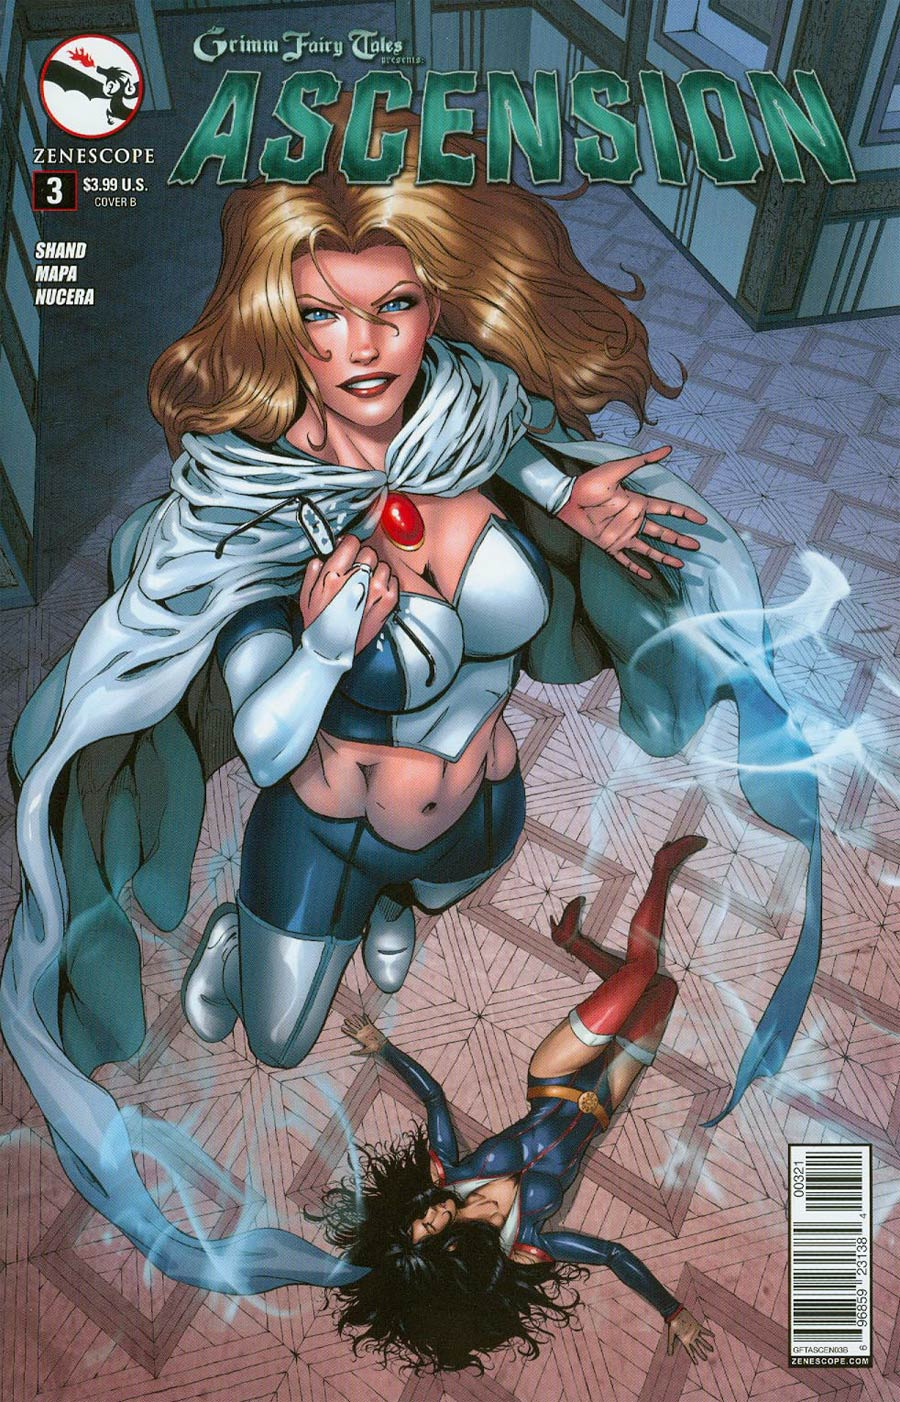 Grimm Fairy Tales Presents Ascension #3 Cover B Eric J